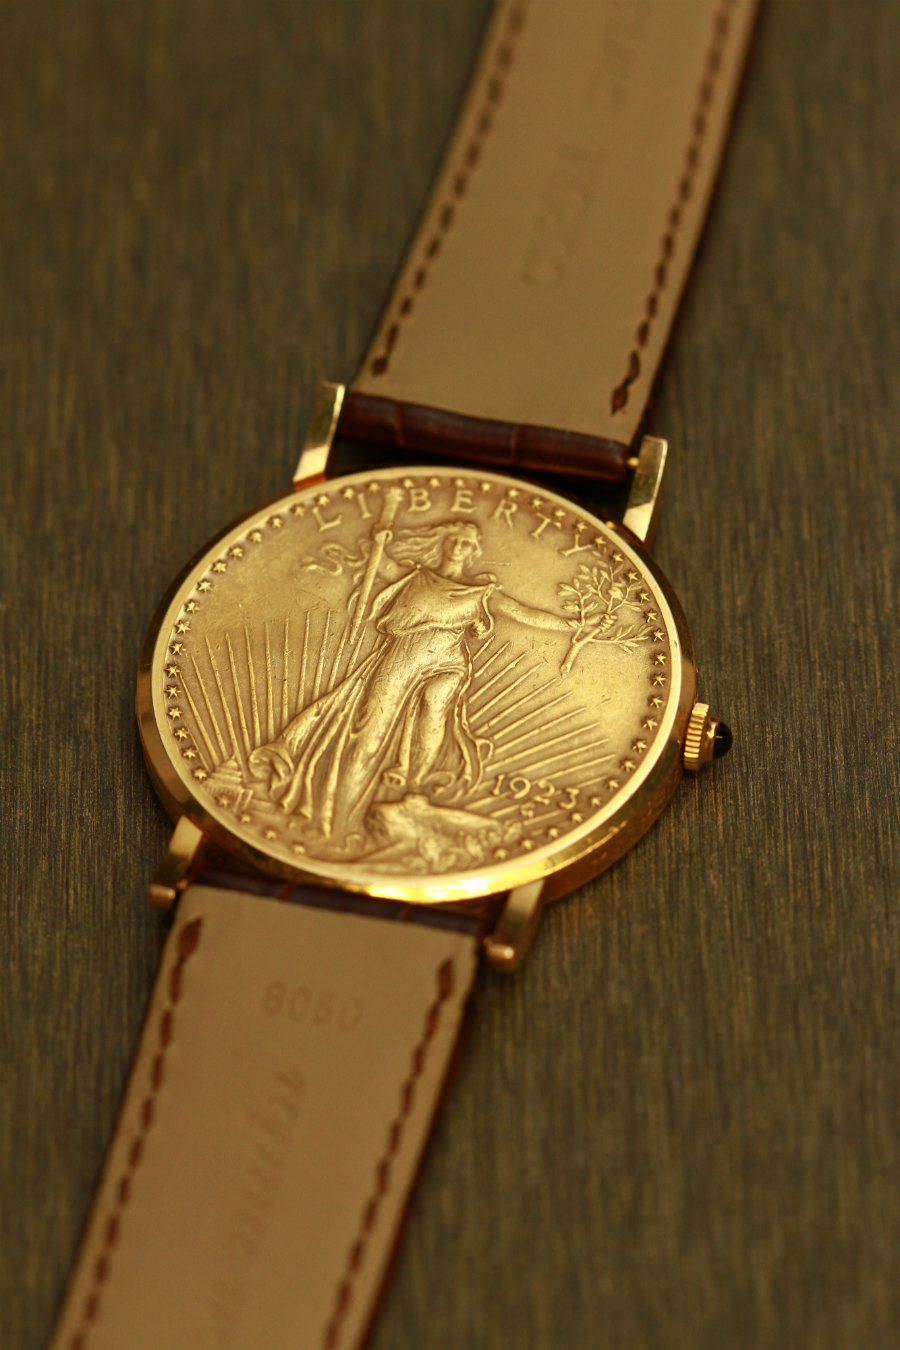 Andy Warhol Coin Watch Montecristo